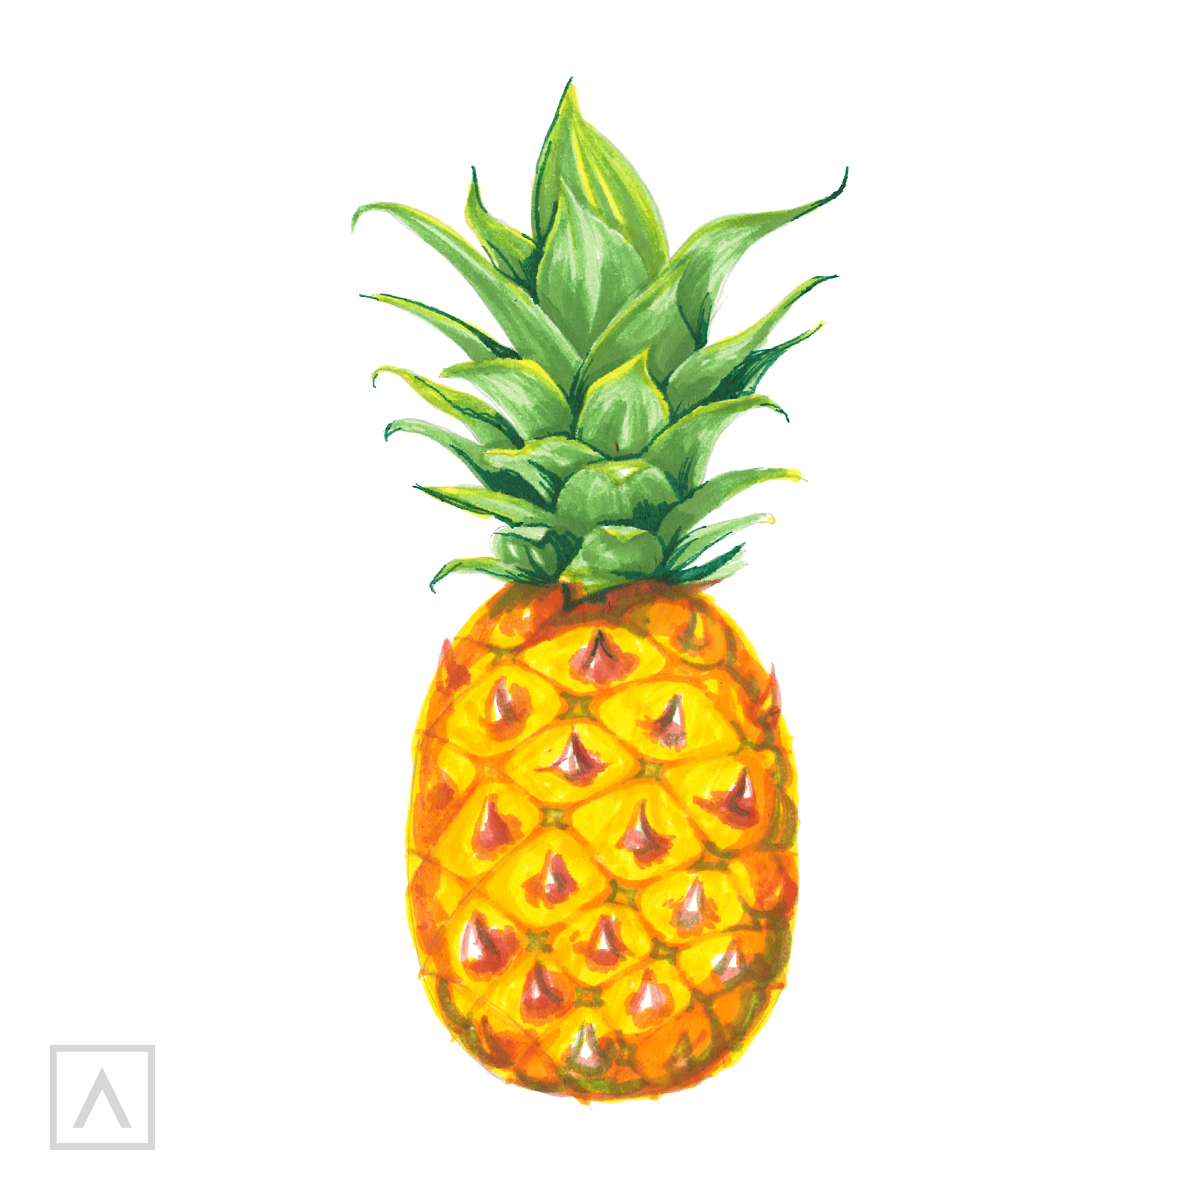 Pineapple drawing. Step 8